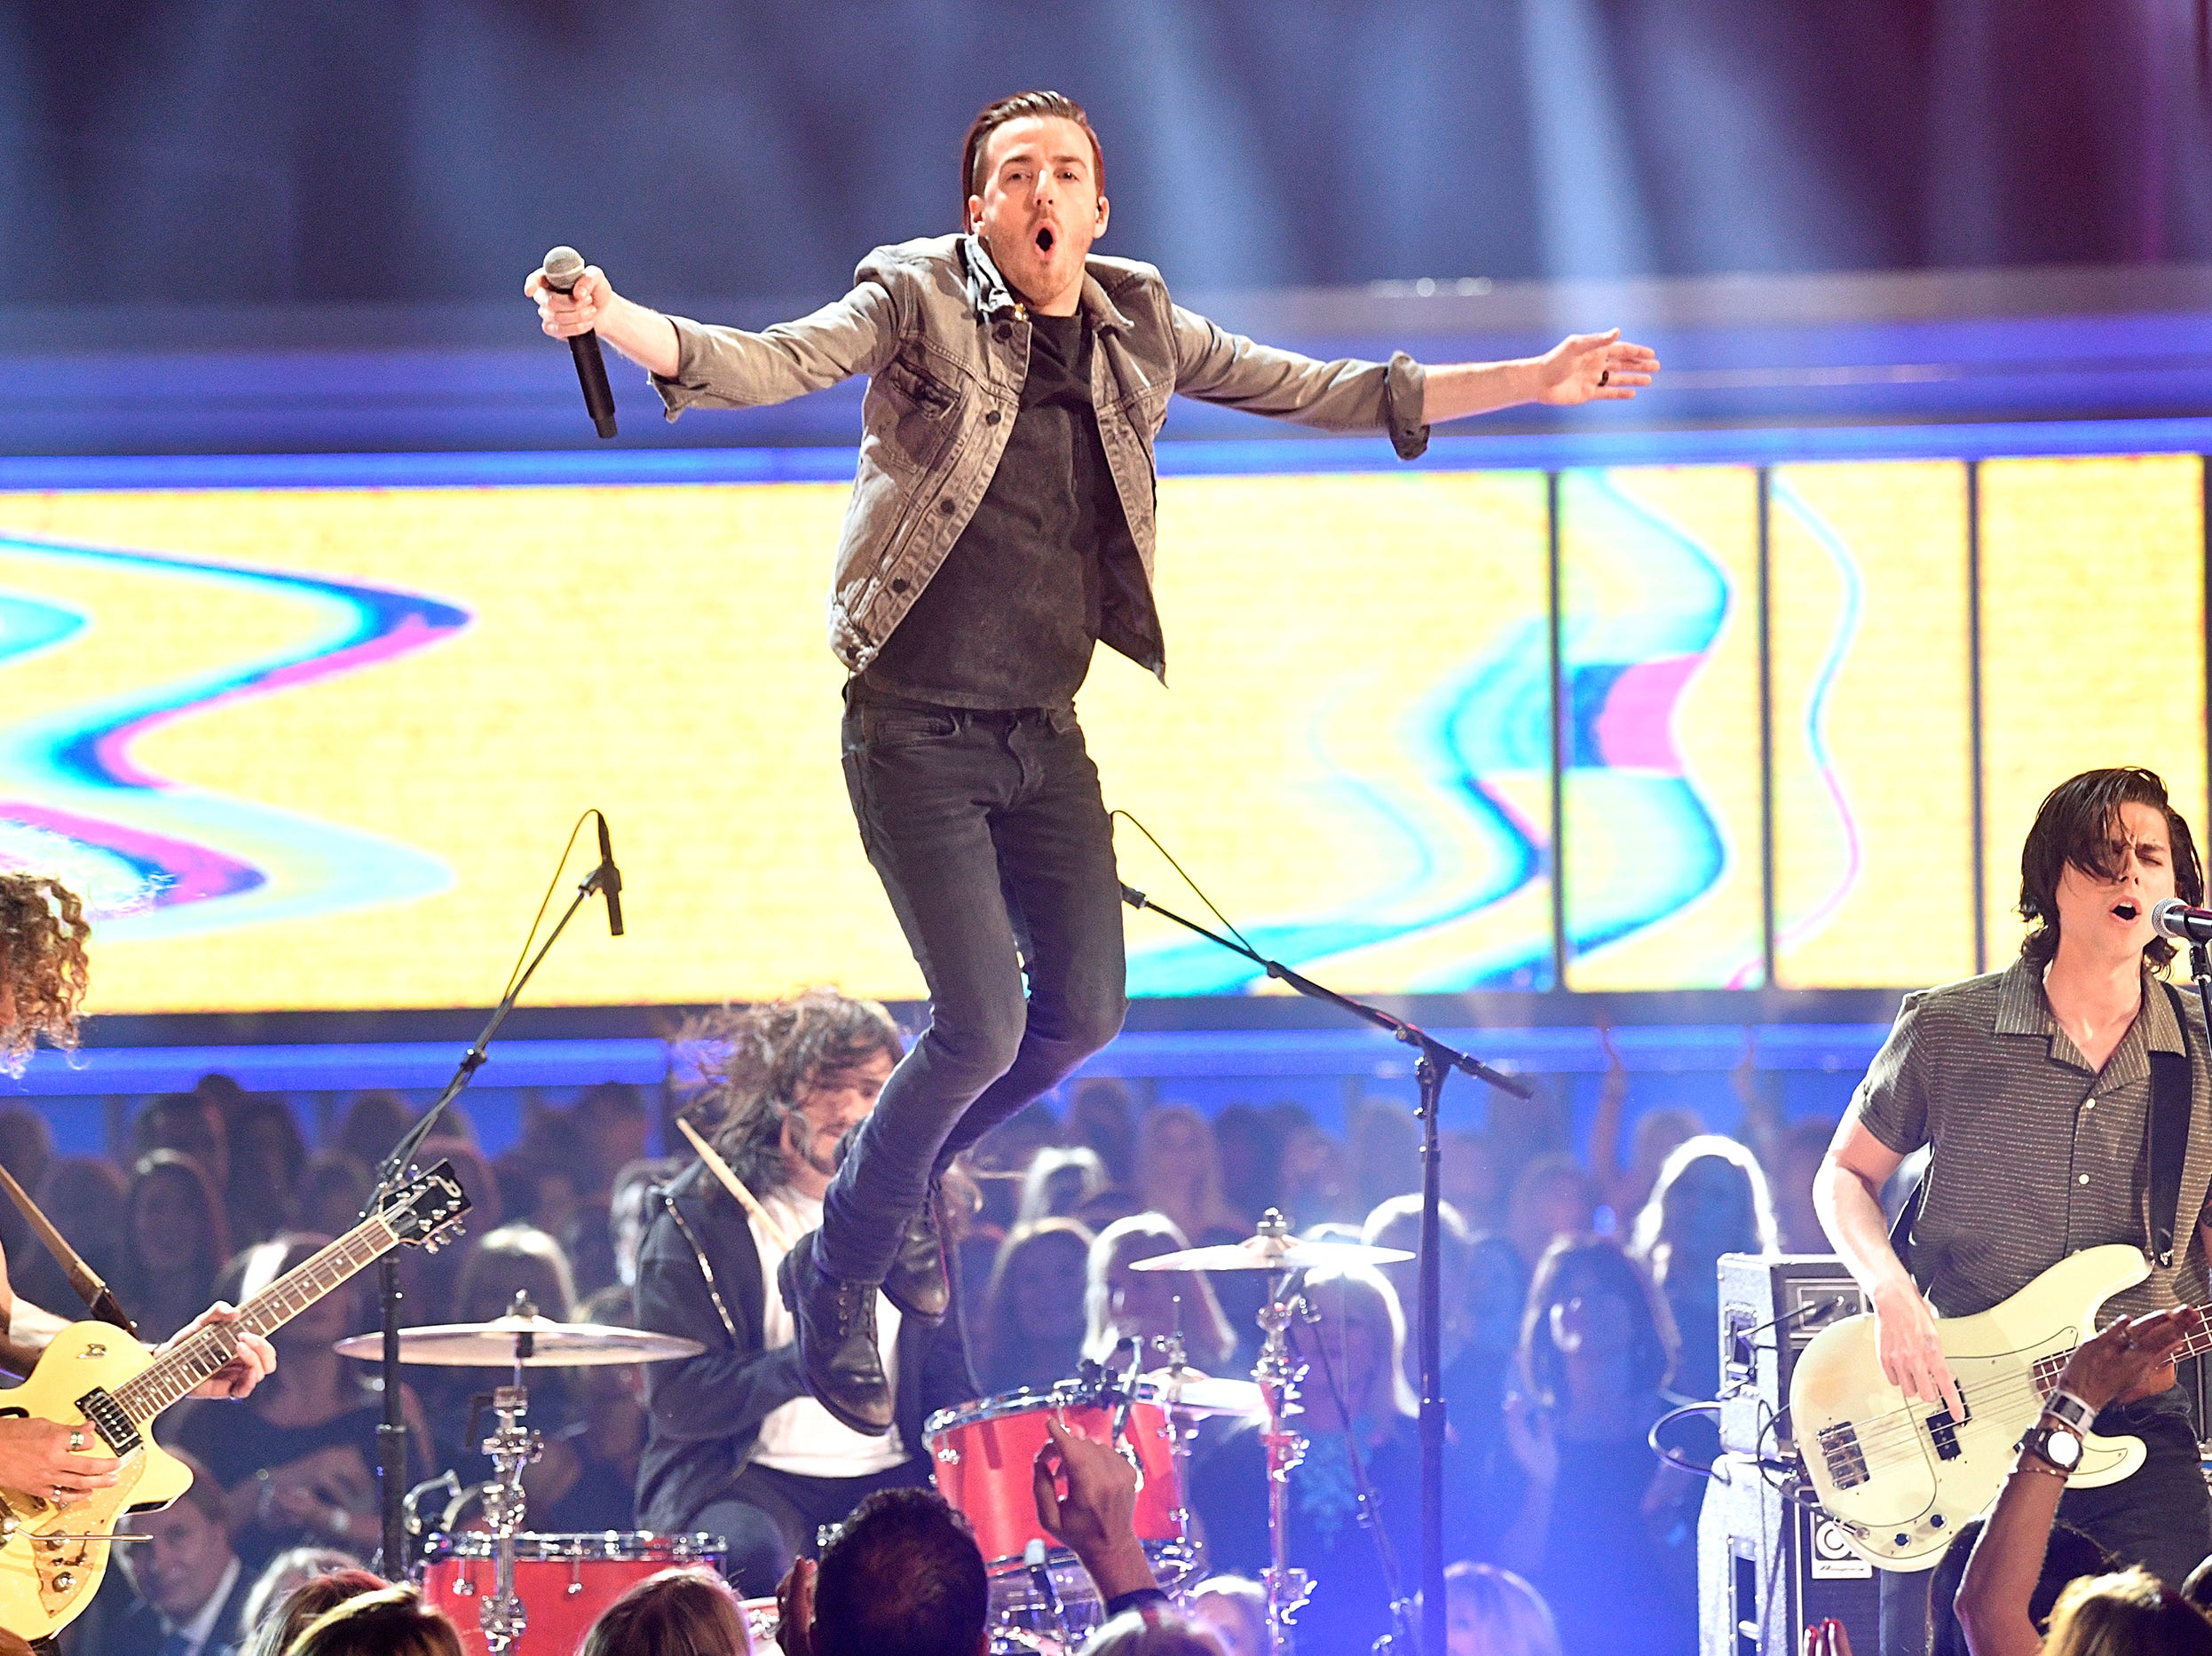 Brandon Lancaster, center, of music group Lanco, performs during the 54TH Academy of Country Music Awards Sunday, April 7, 2019, in Las Vegas, Nev.